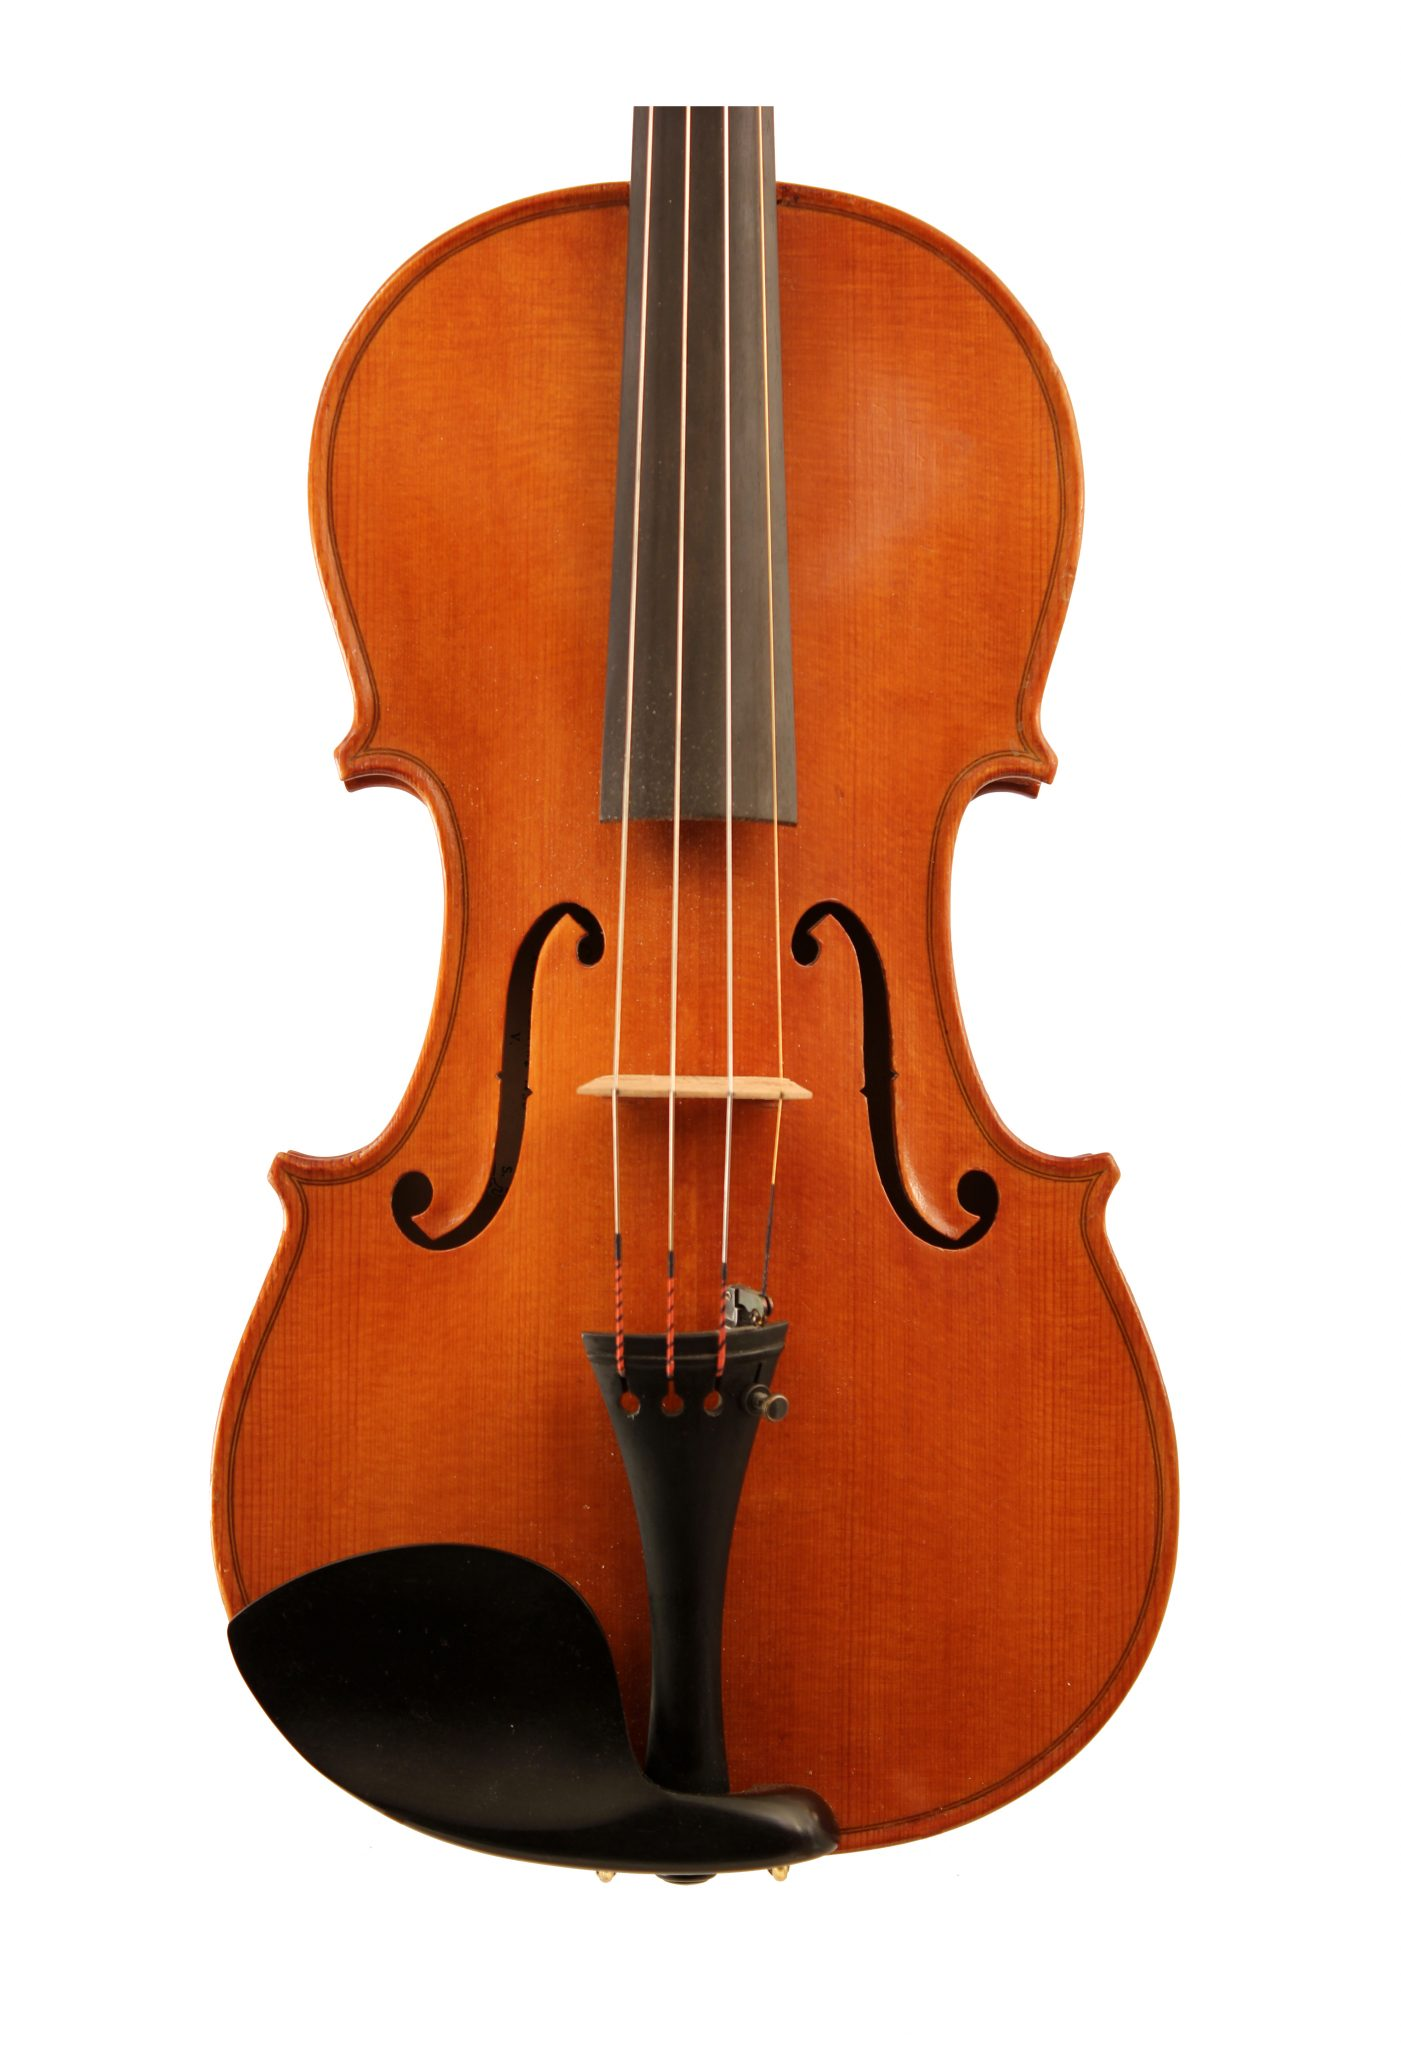 Violin by Pecchini Vasco 1936 for sale at Bridgewood and Neitzert London